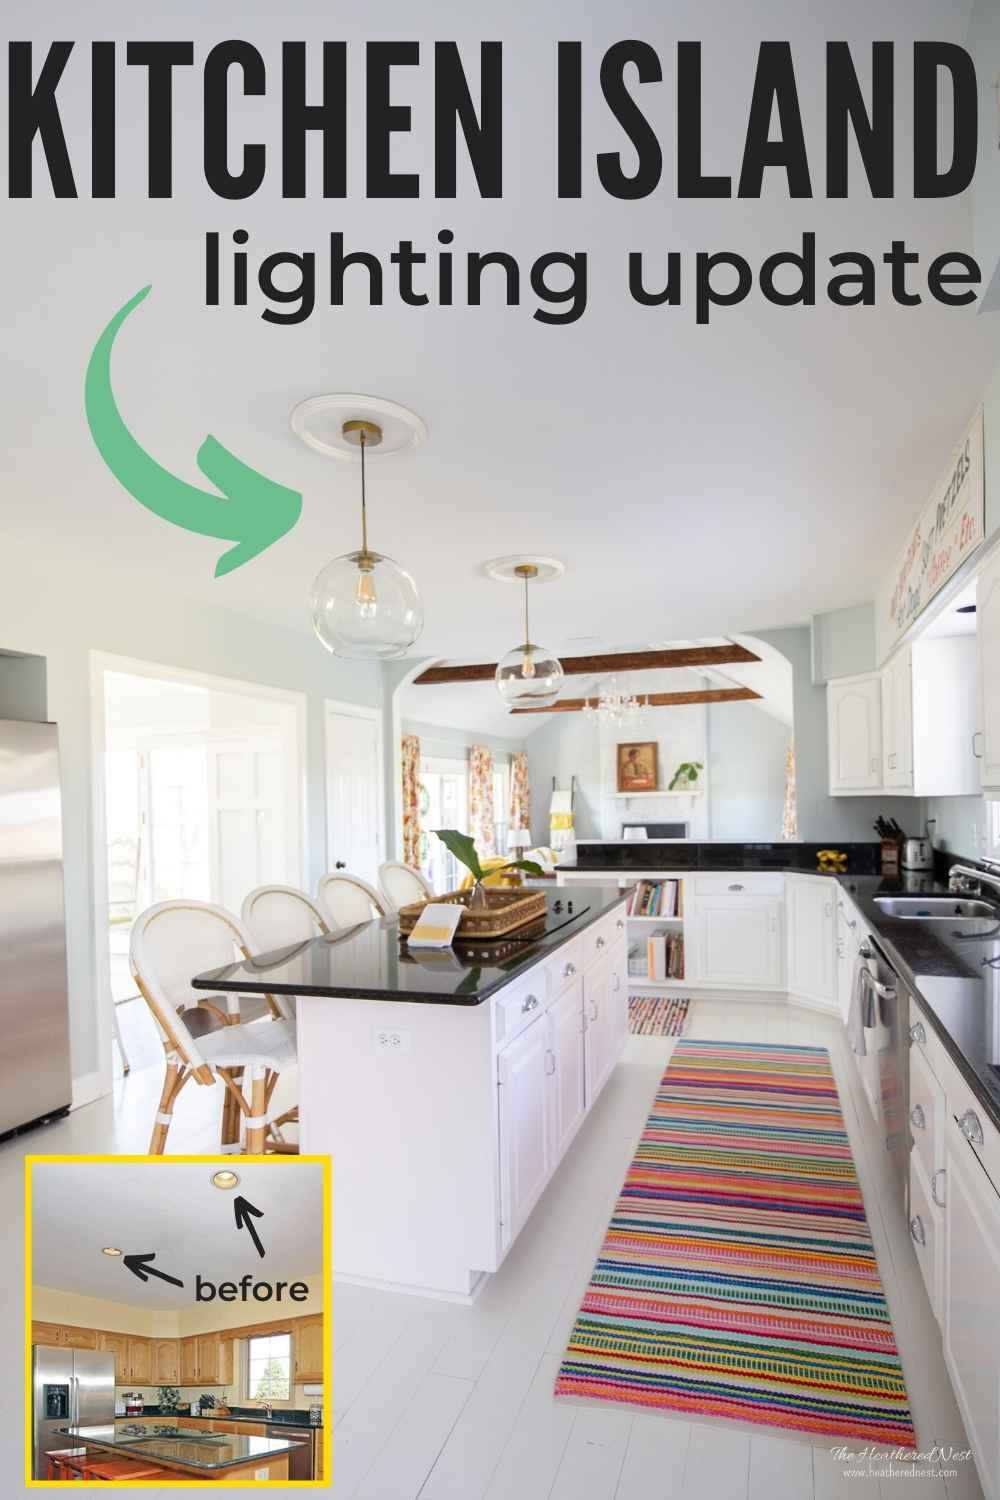 It's amazing what a difference changing the lighting over your kitchen island can make! During our $1000 kitchen renovation, we changed the recessed can lights to pendant lighting and have now installed these gorgeous brass globe pendant lights over the island.